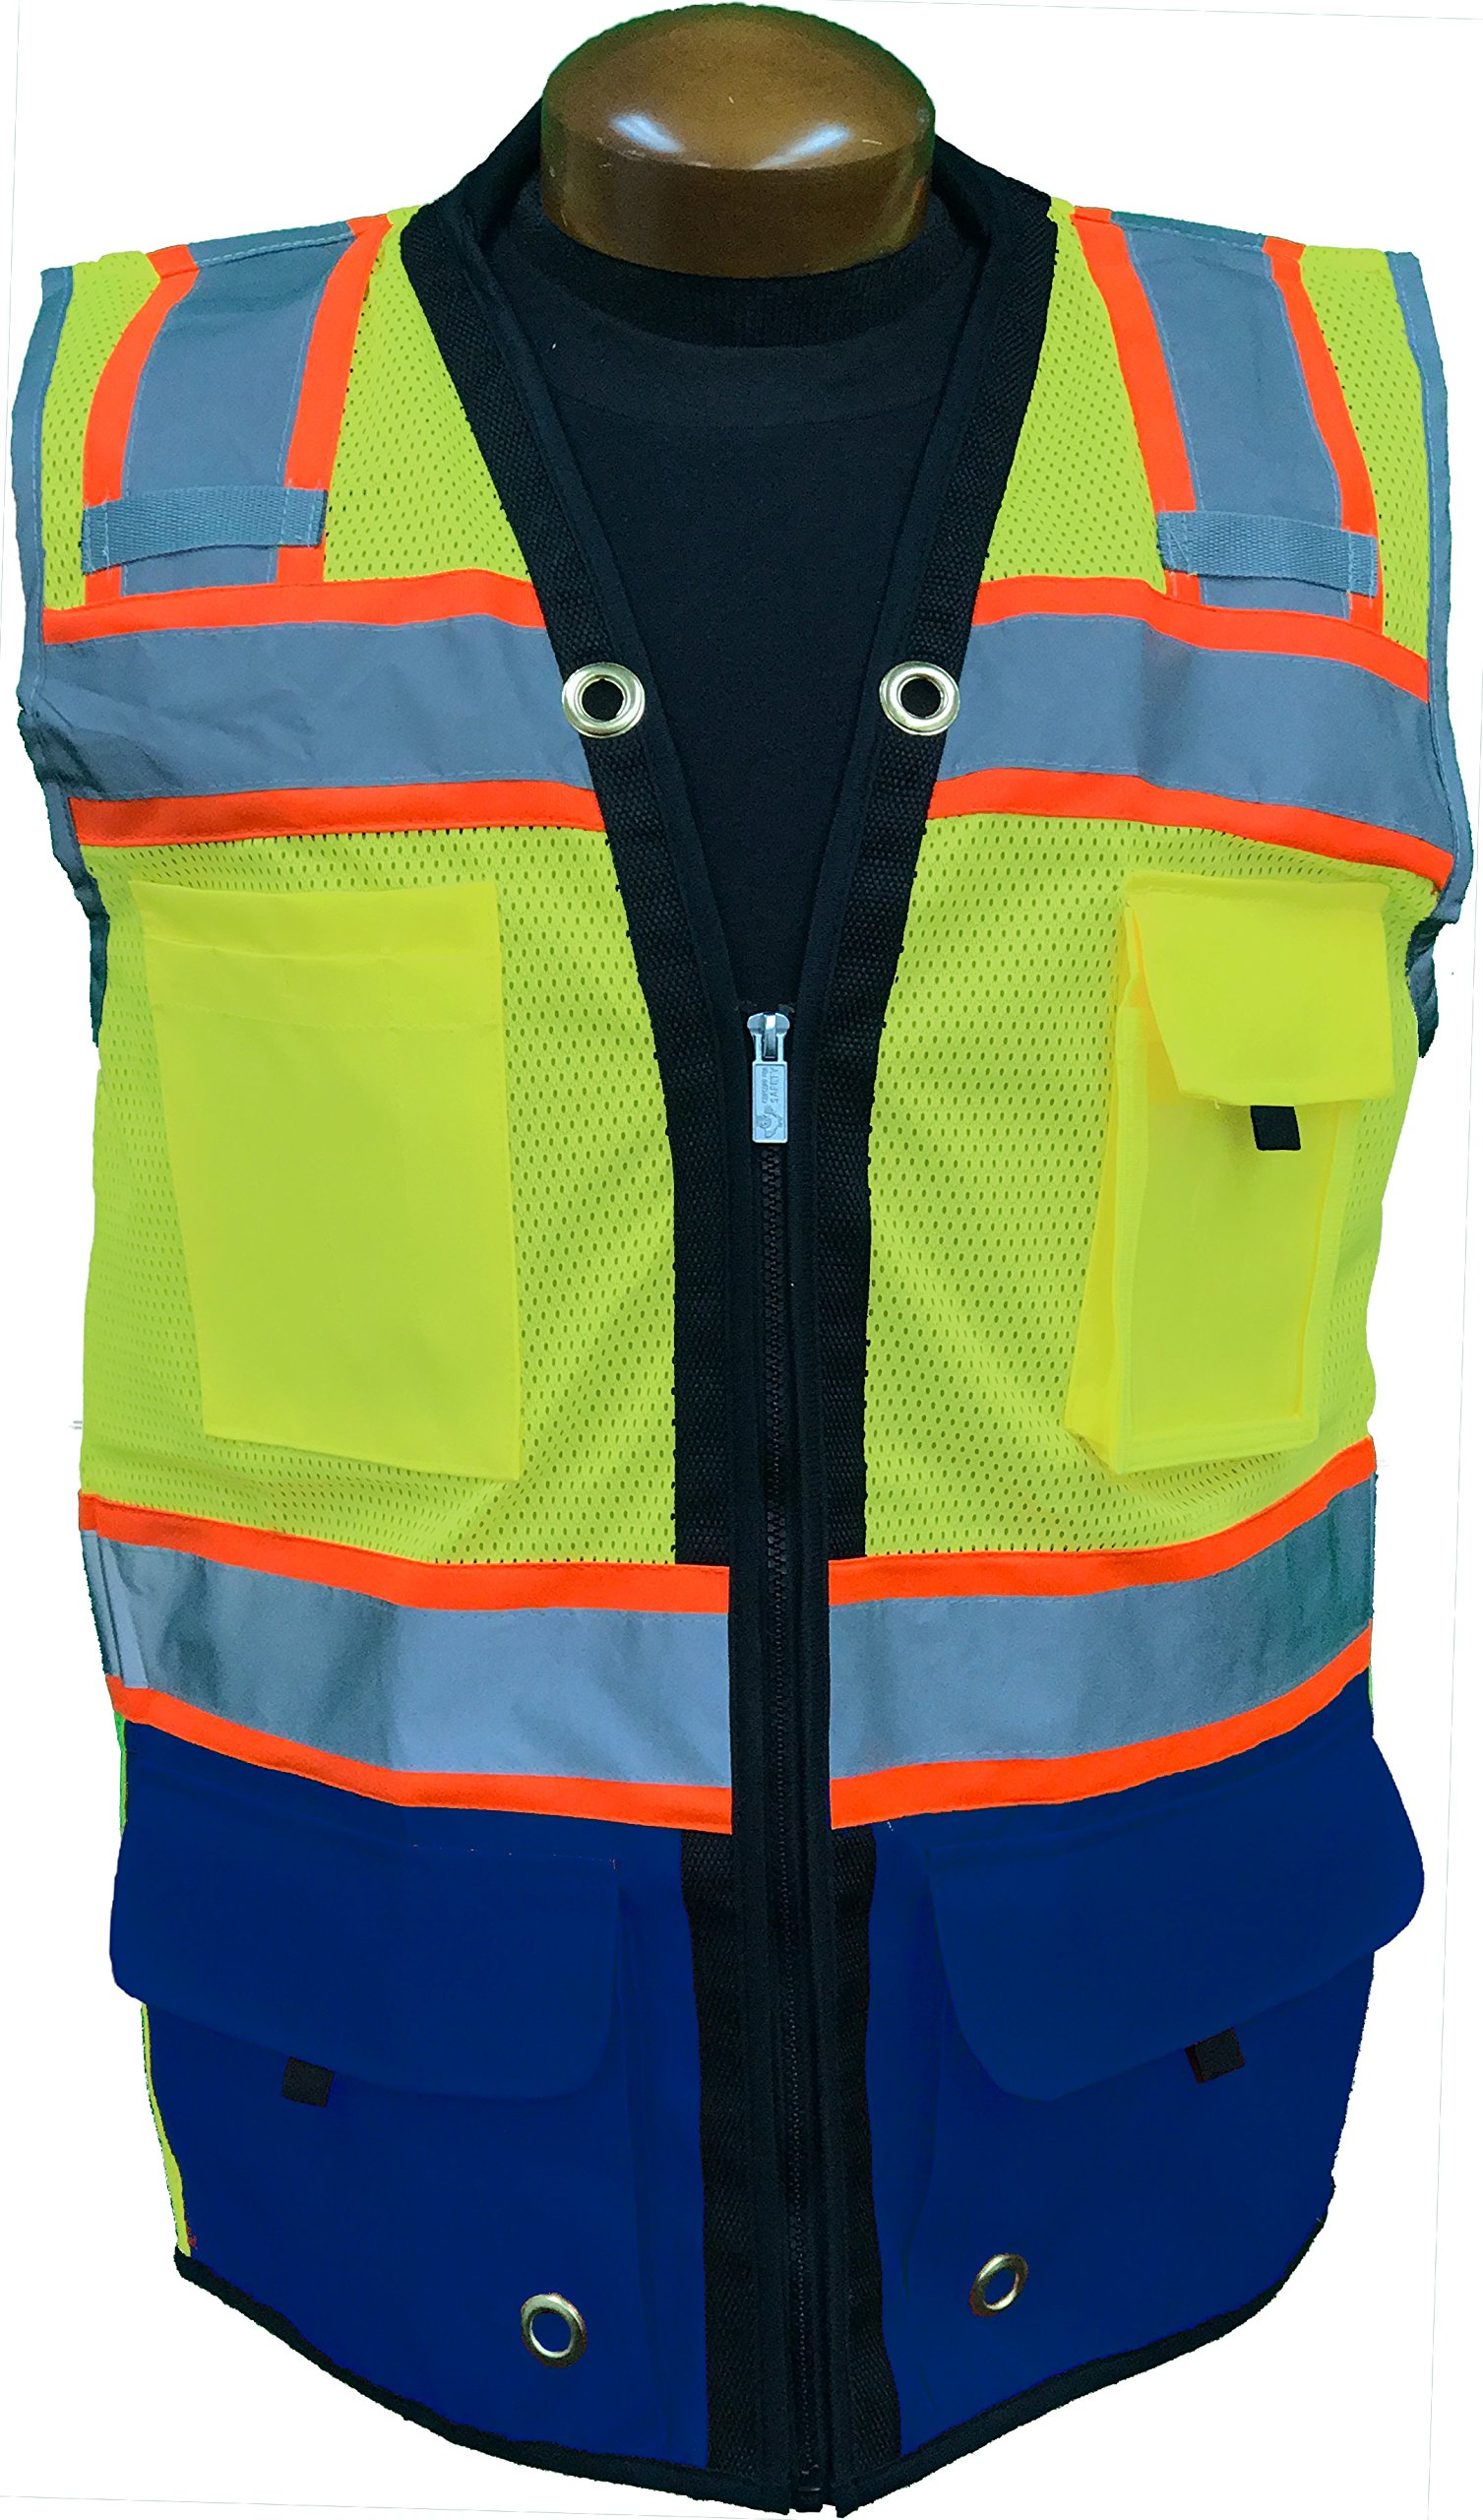 SHINE BRIGHT SV544RB | Premium Surveyor's High Visibility Safety Vest | 2 Tone Lime/Royal Blue with Reflective Strips |ANSI CLASS 2 |Soft and Breathable |Heavy Duty Zipper Front|Size Large